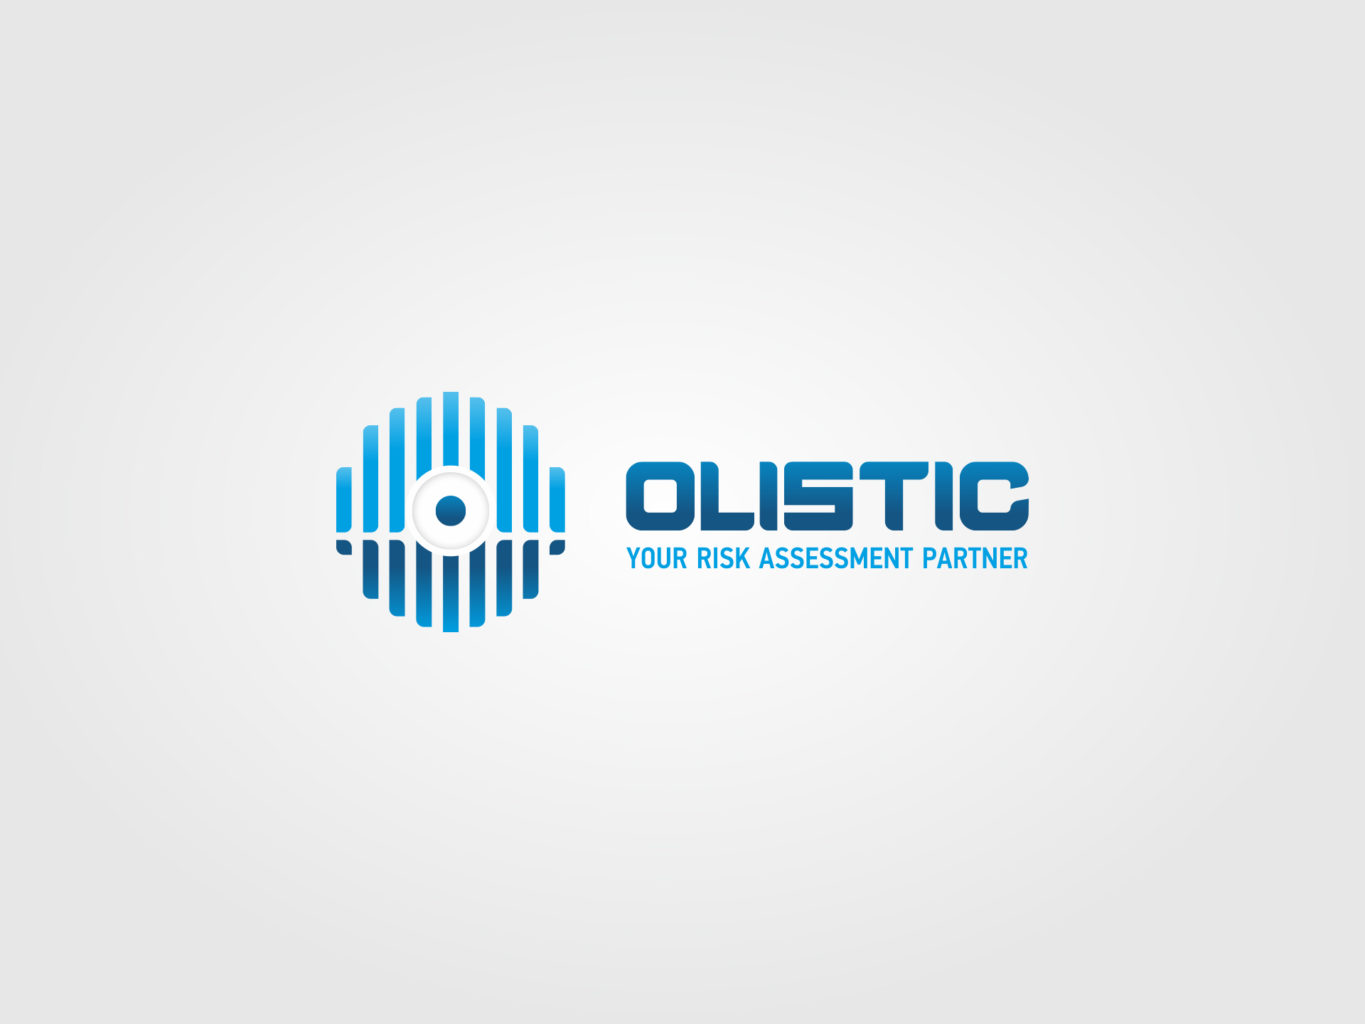 olistic your risk assassment partner logo by fiftyeggz